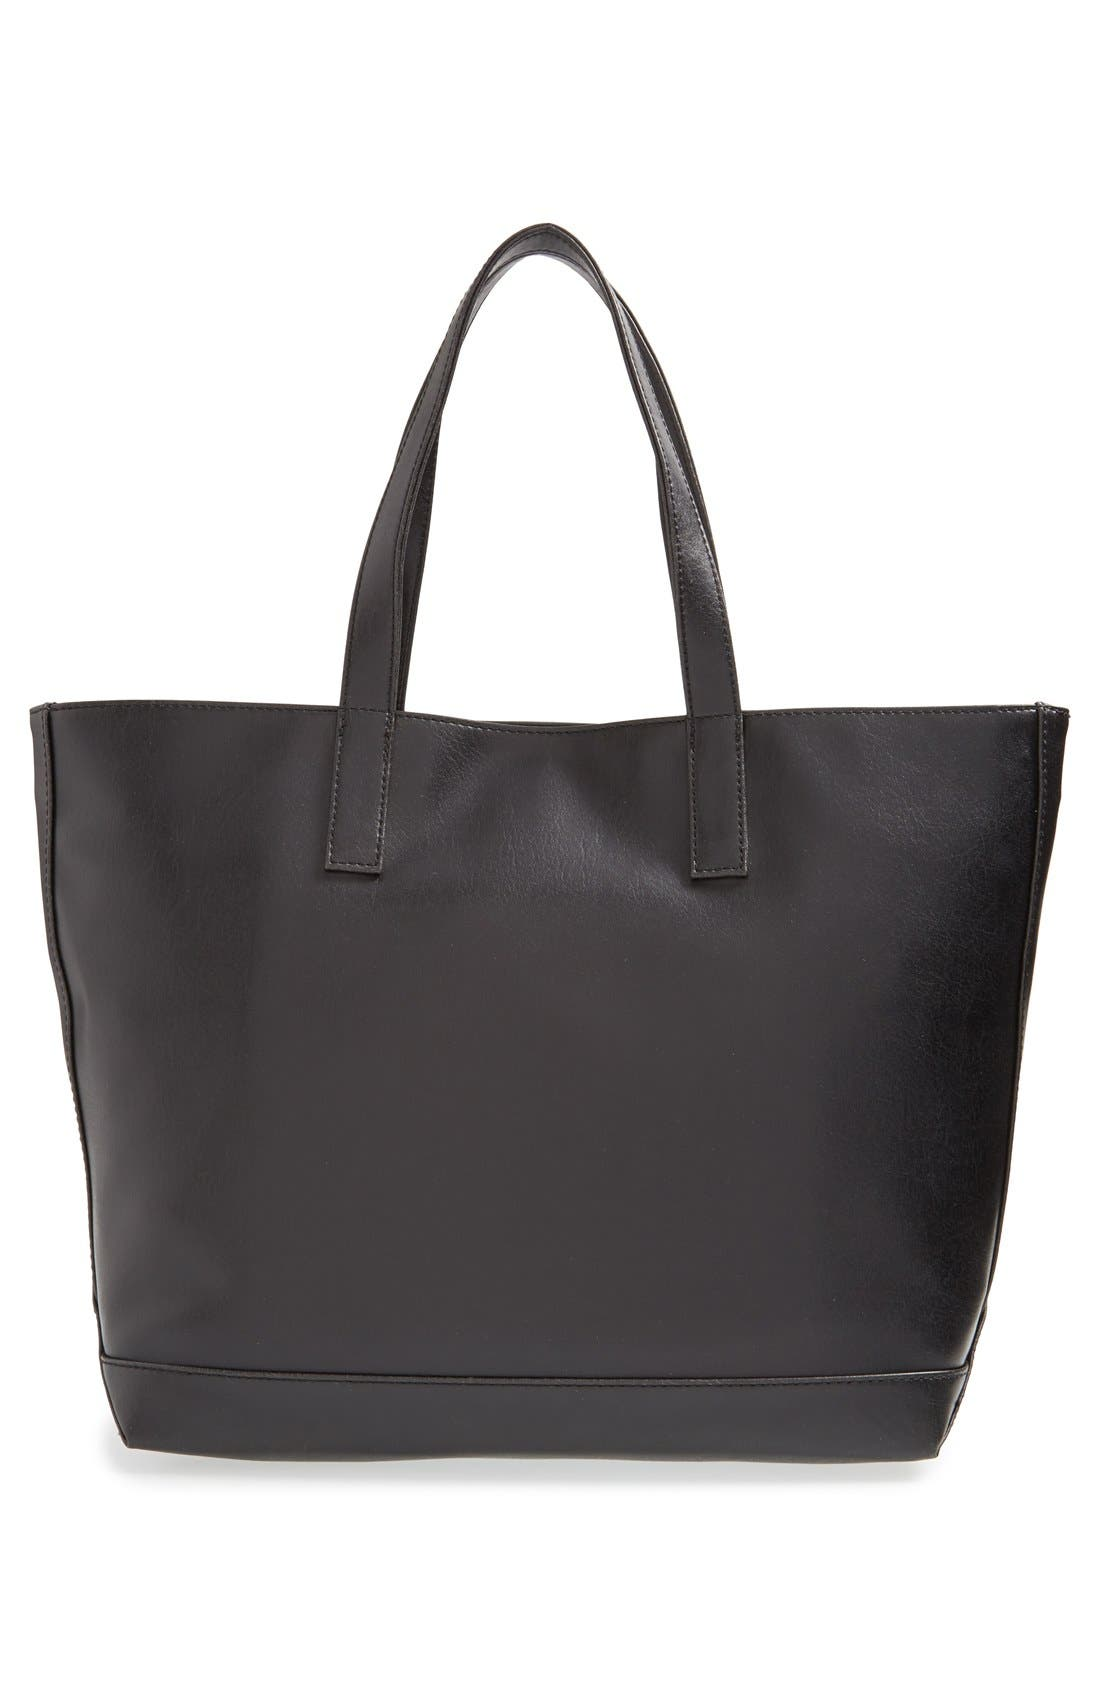 Alternate Image 3  - Matt & Nat 'Schlepp' Vegan Leather Tote